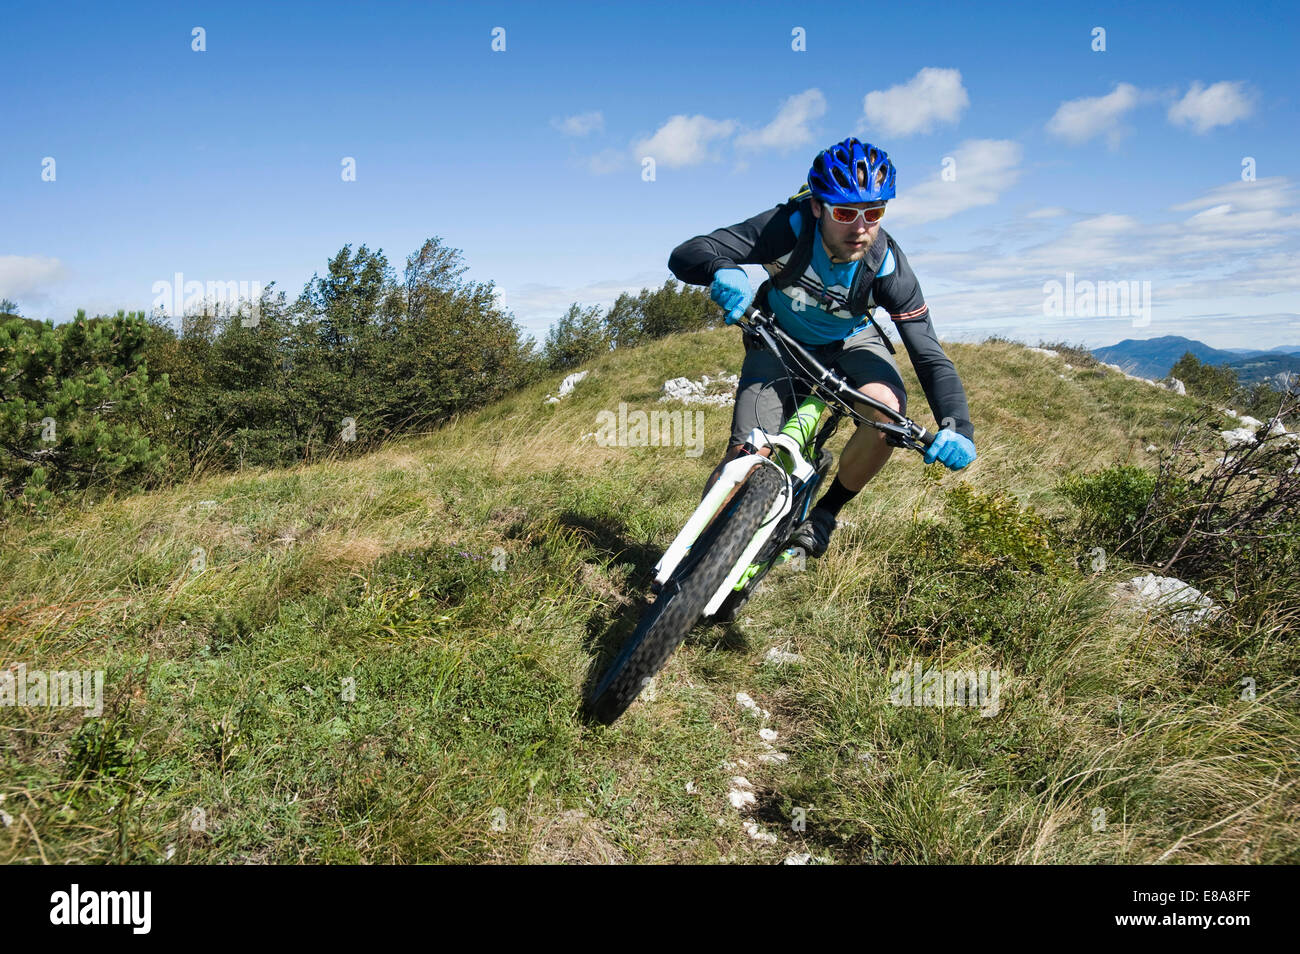 mountain biker on the way downhill, Vipava valley, Istria, Slovenia - Stock Image